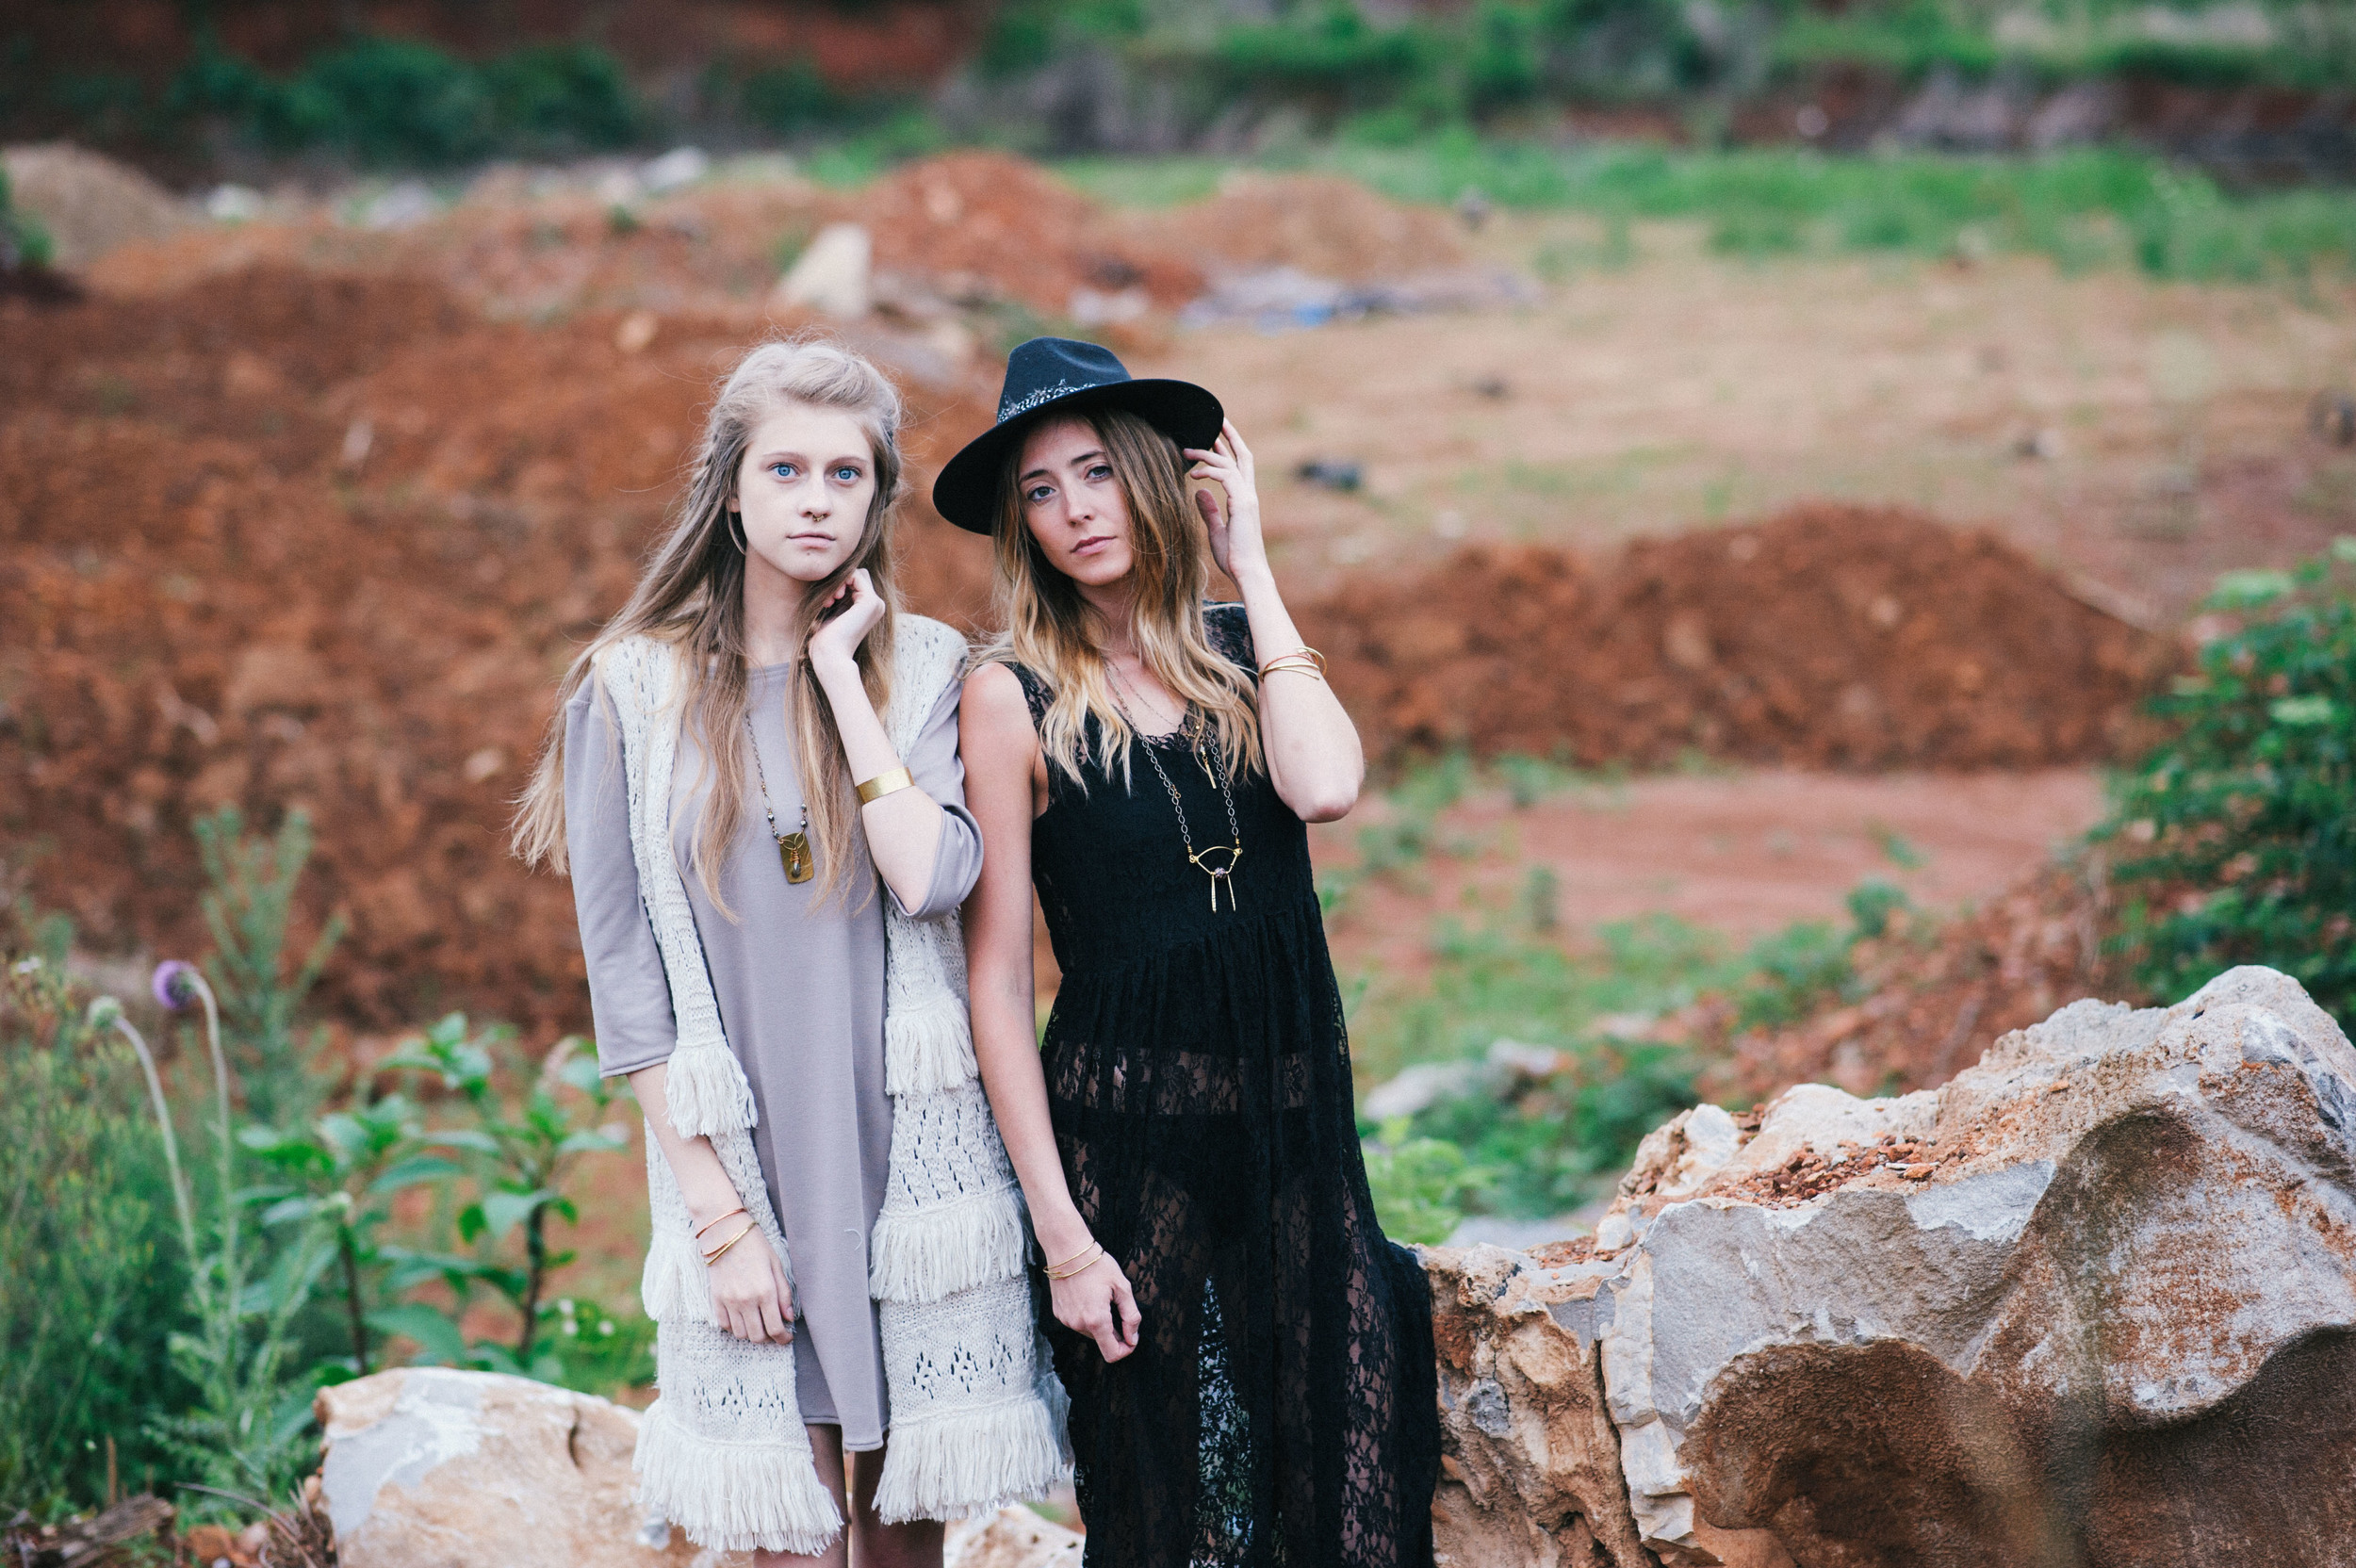 m.newsom_photography_Hazel_and_scout_simon_and_ruby_sisters_of_nature_desert_shoot (27 of 415).jpg